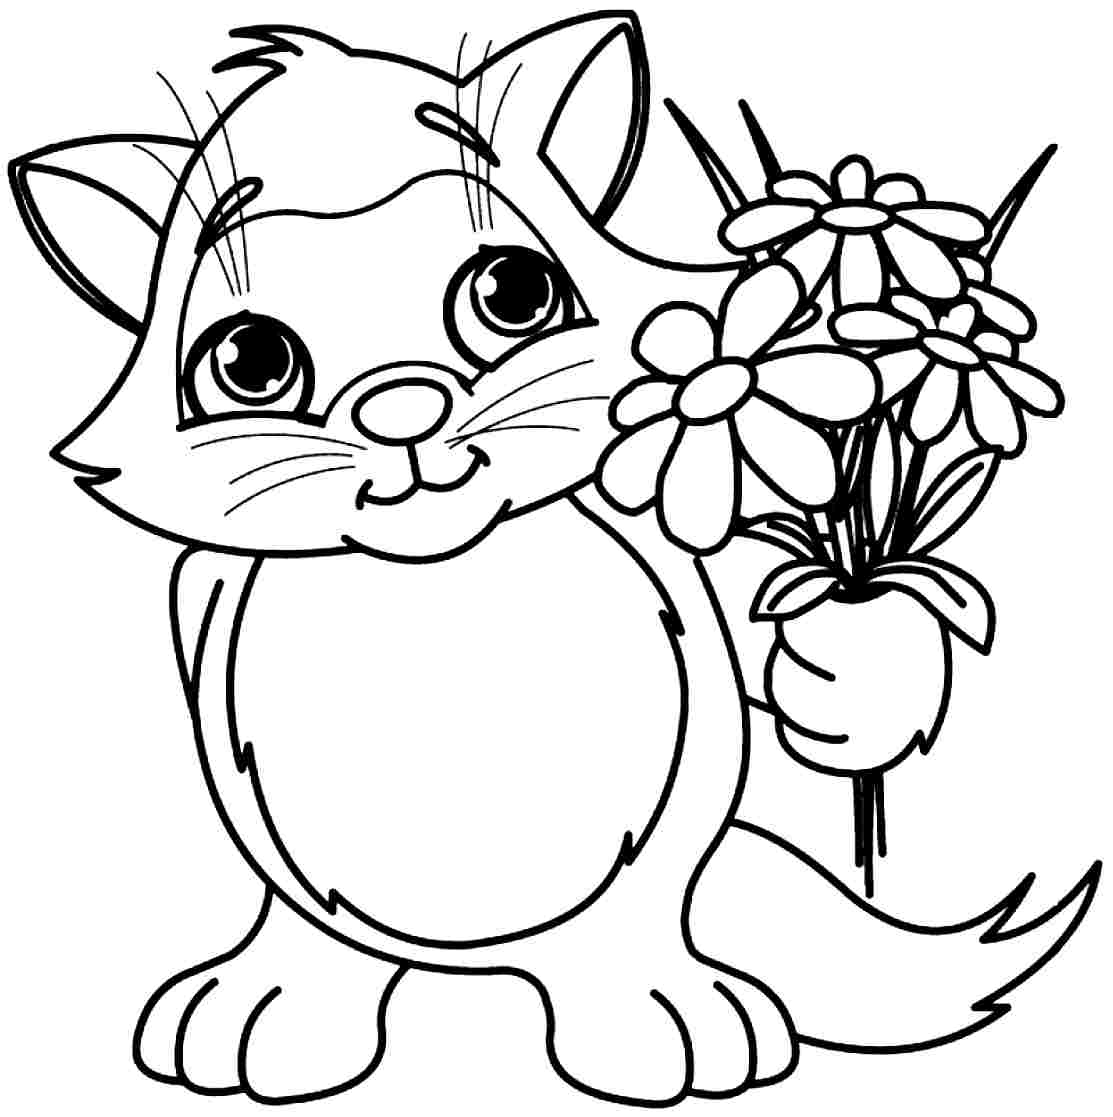 printable flowers to color flower coloring 365 color printable to flowers